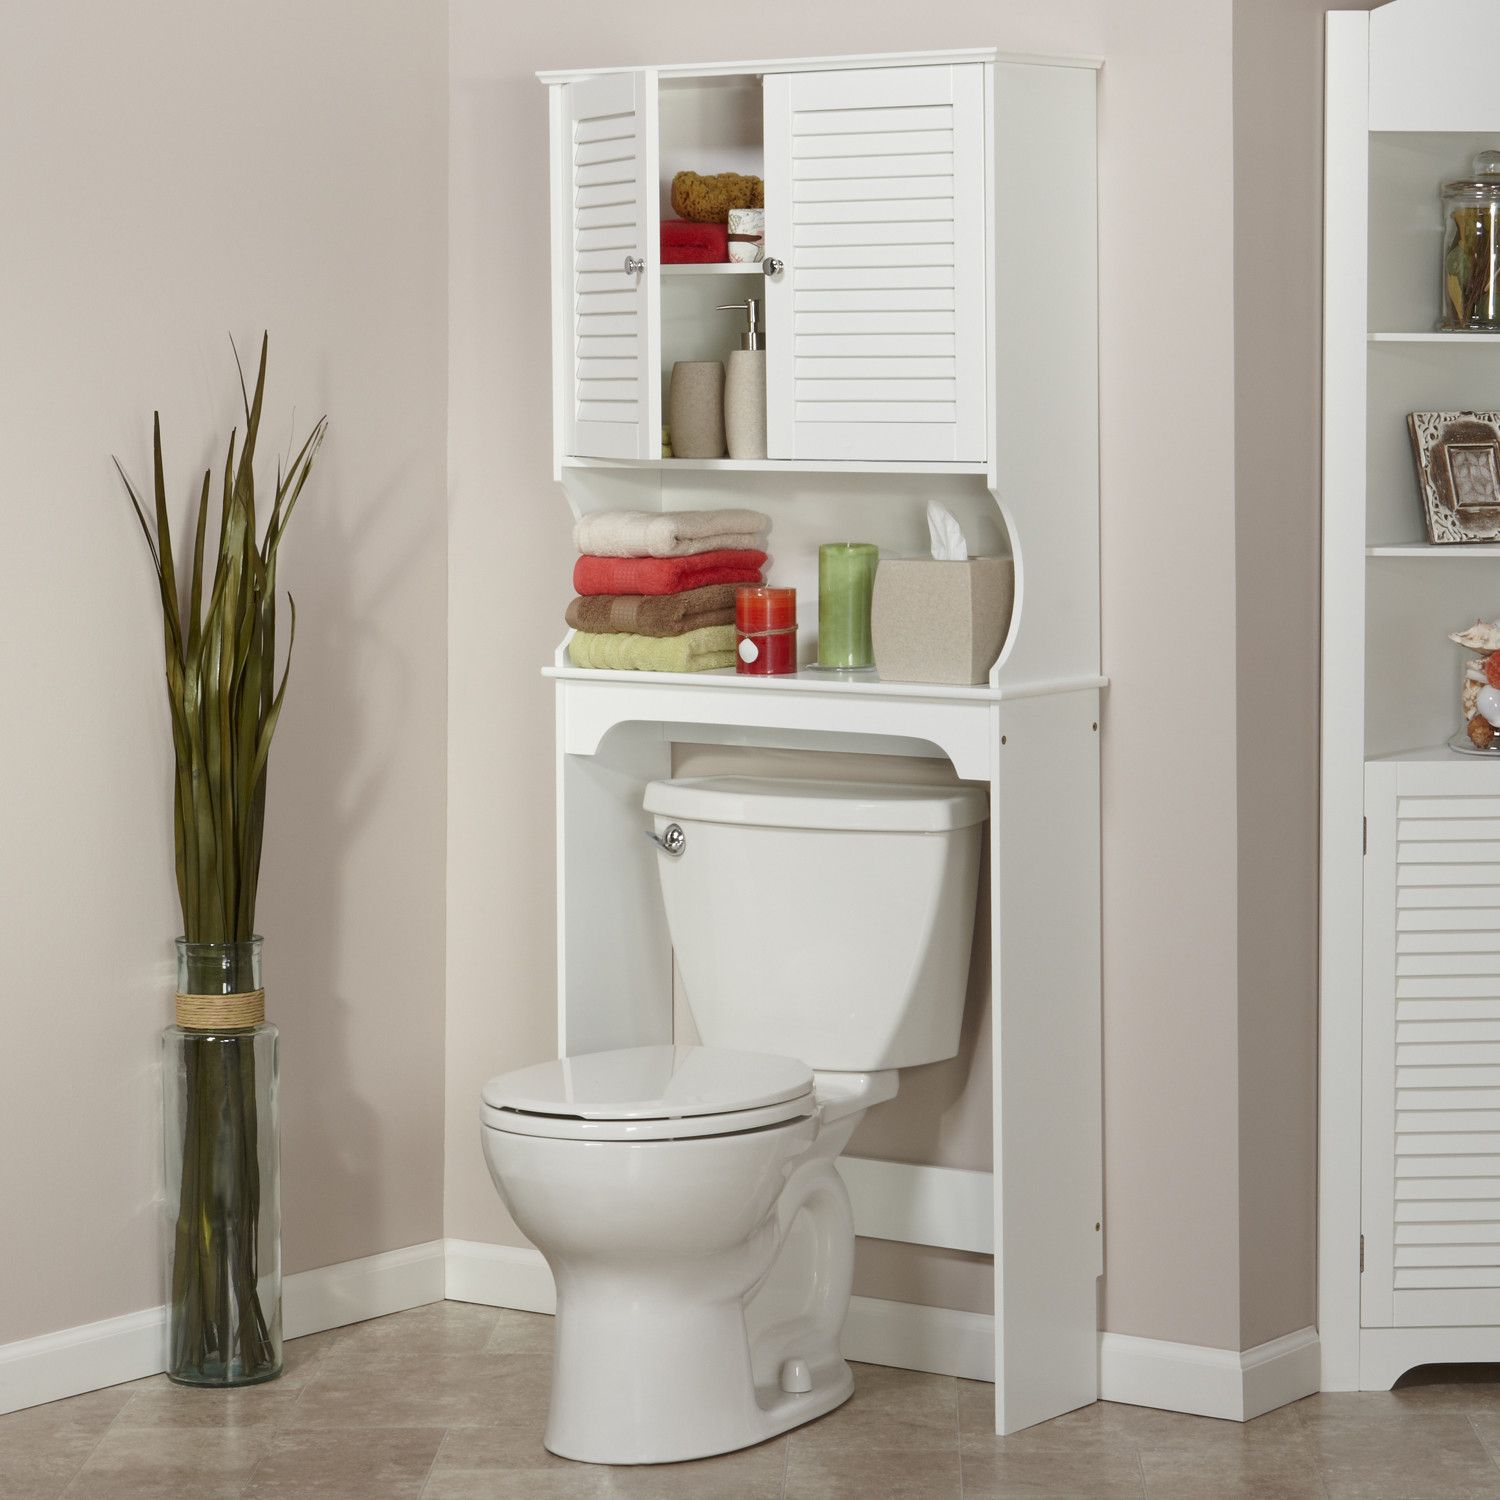 metal bathroom etageres black over the toilet storage cabinet cozy lowes tile flooring with white baseboard and white bathroom